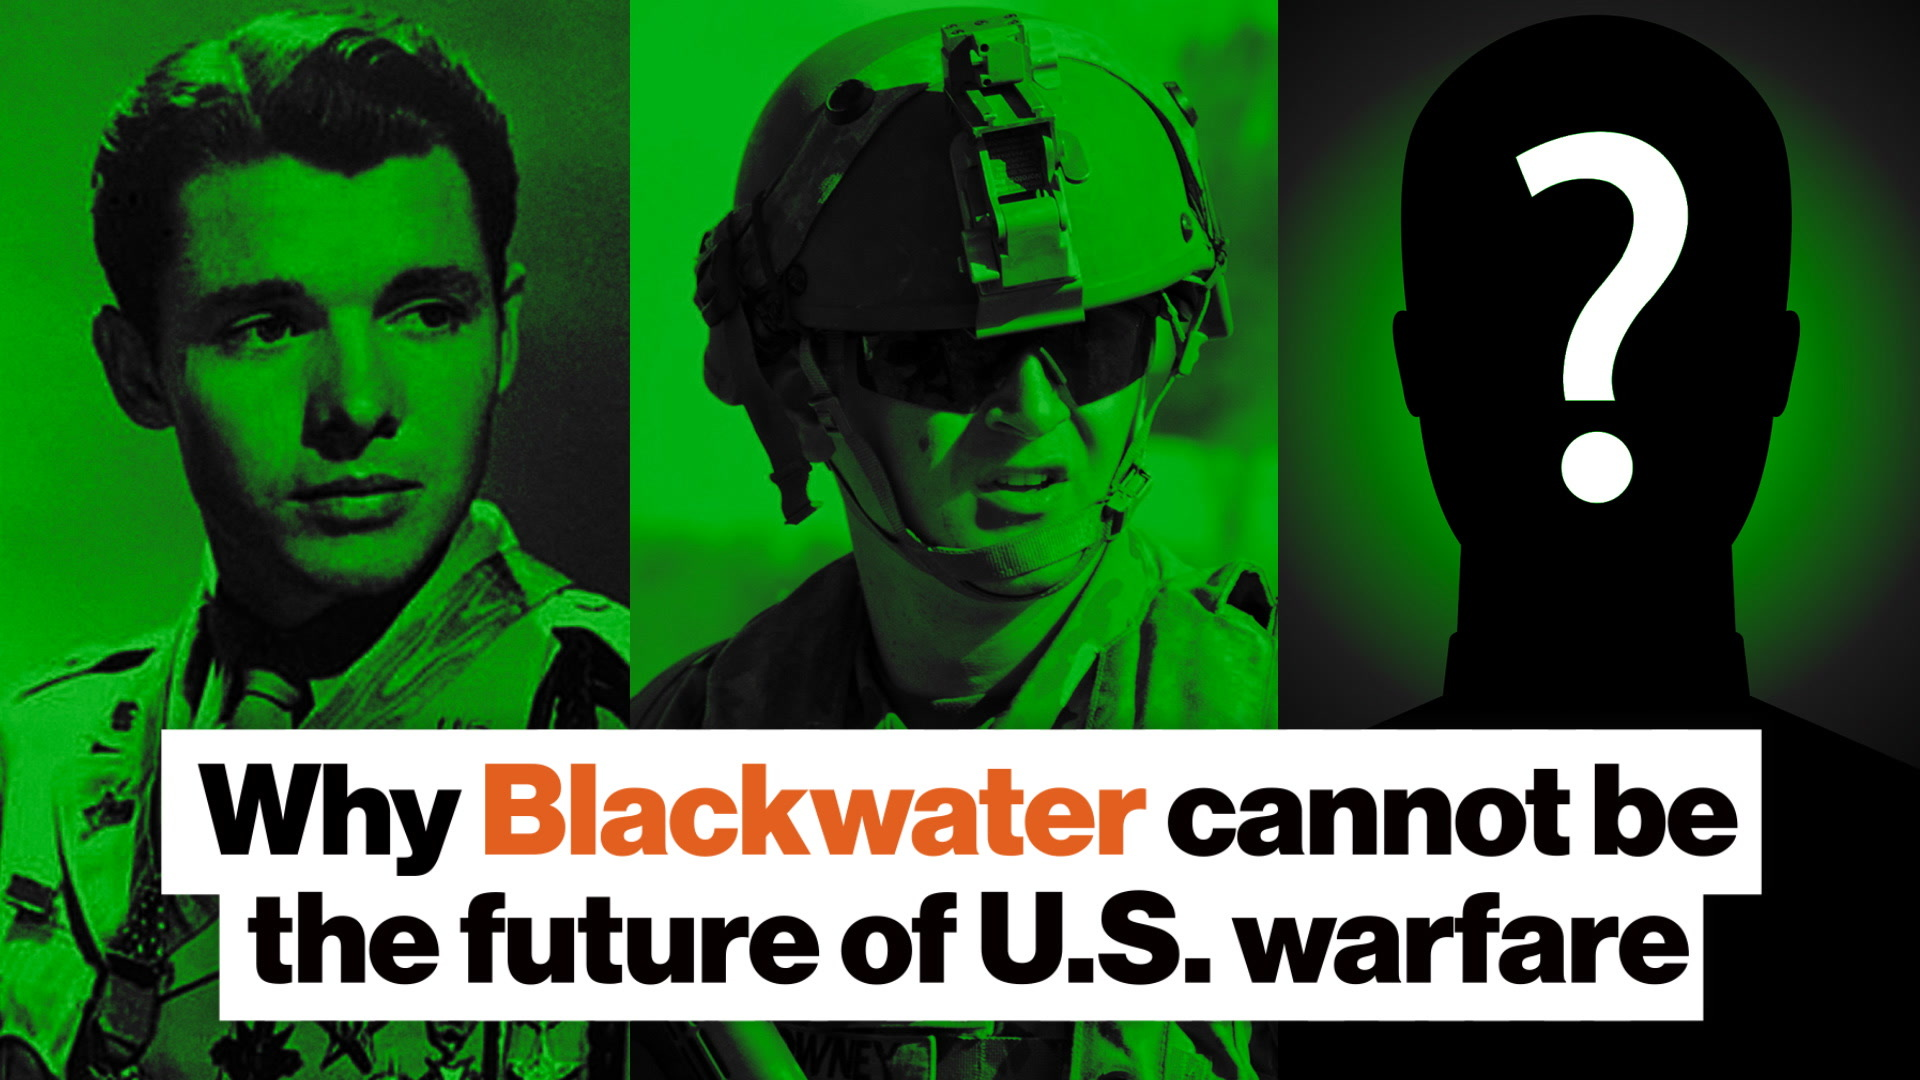 Why Blackwater cannot be the future of U.S. warfare